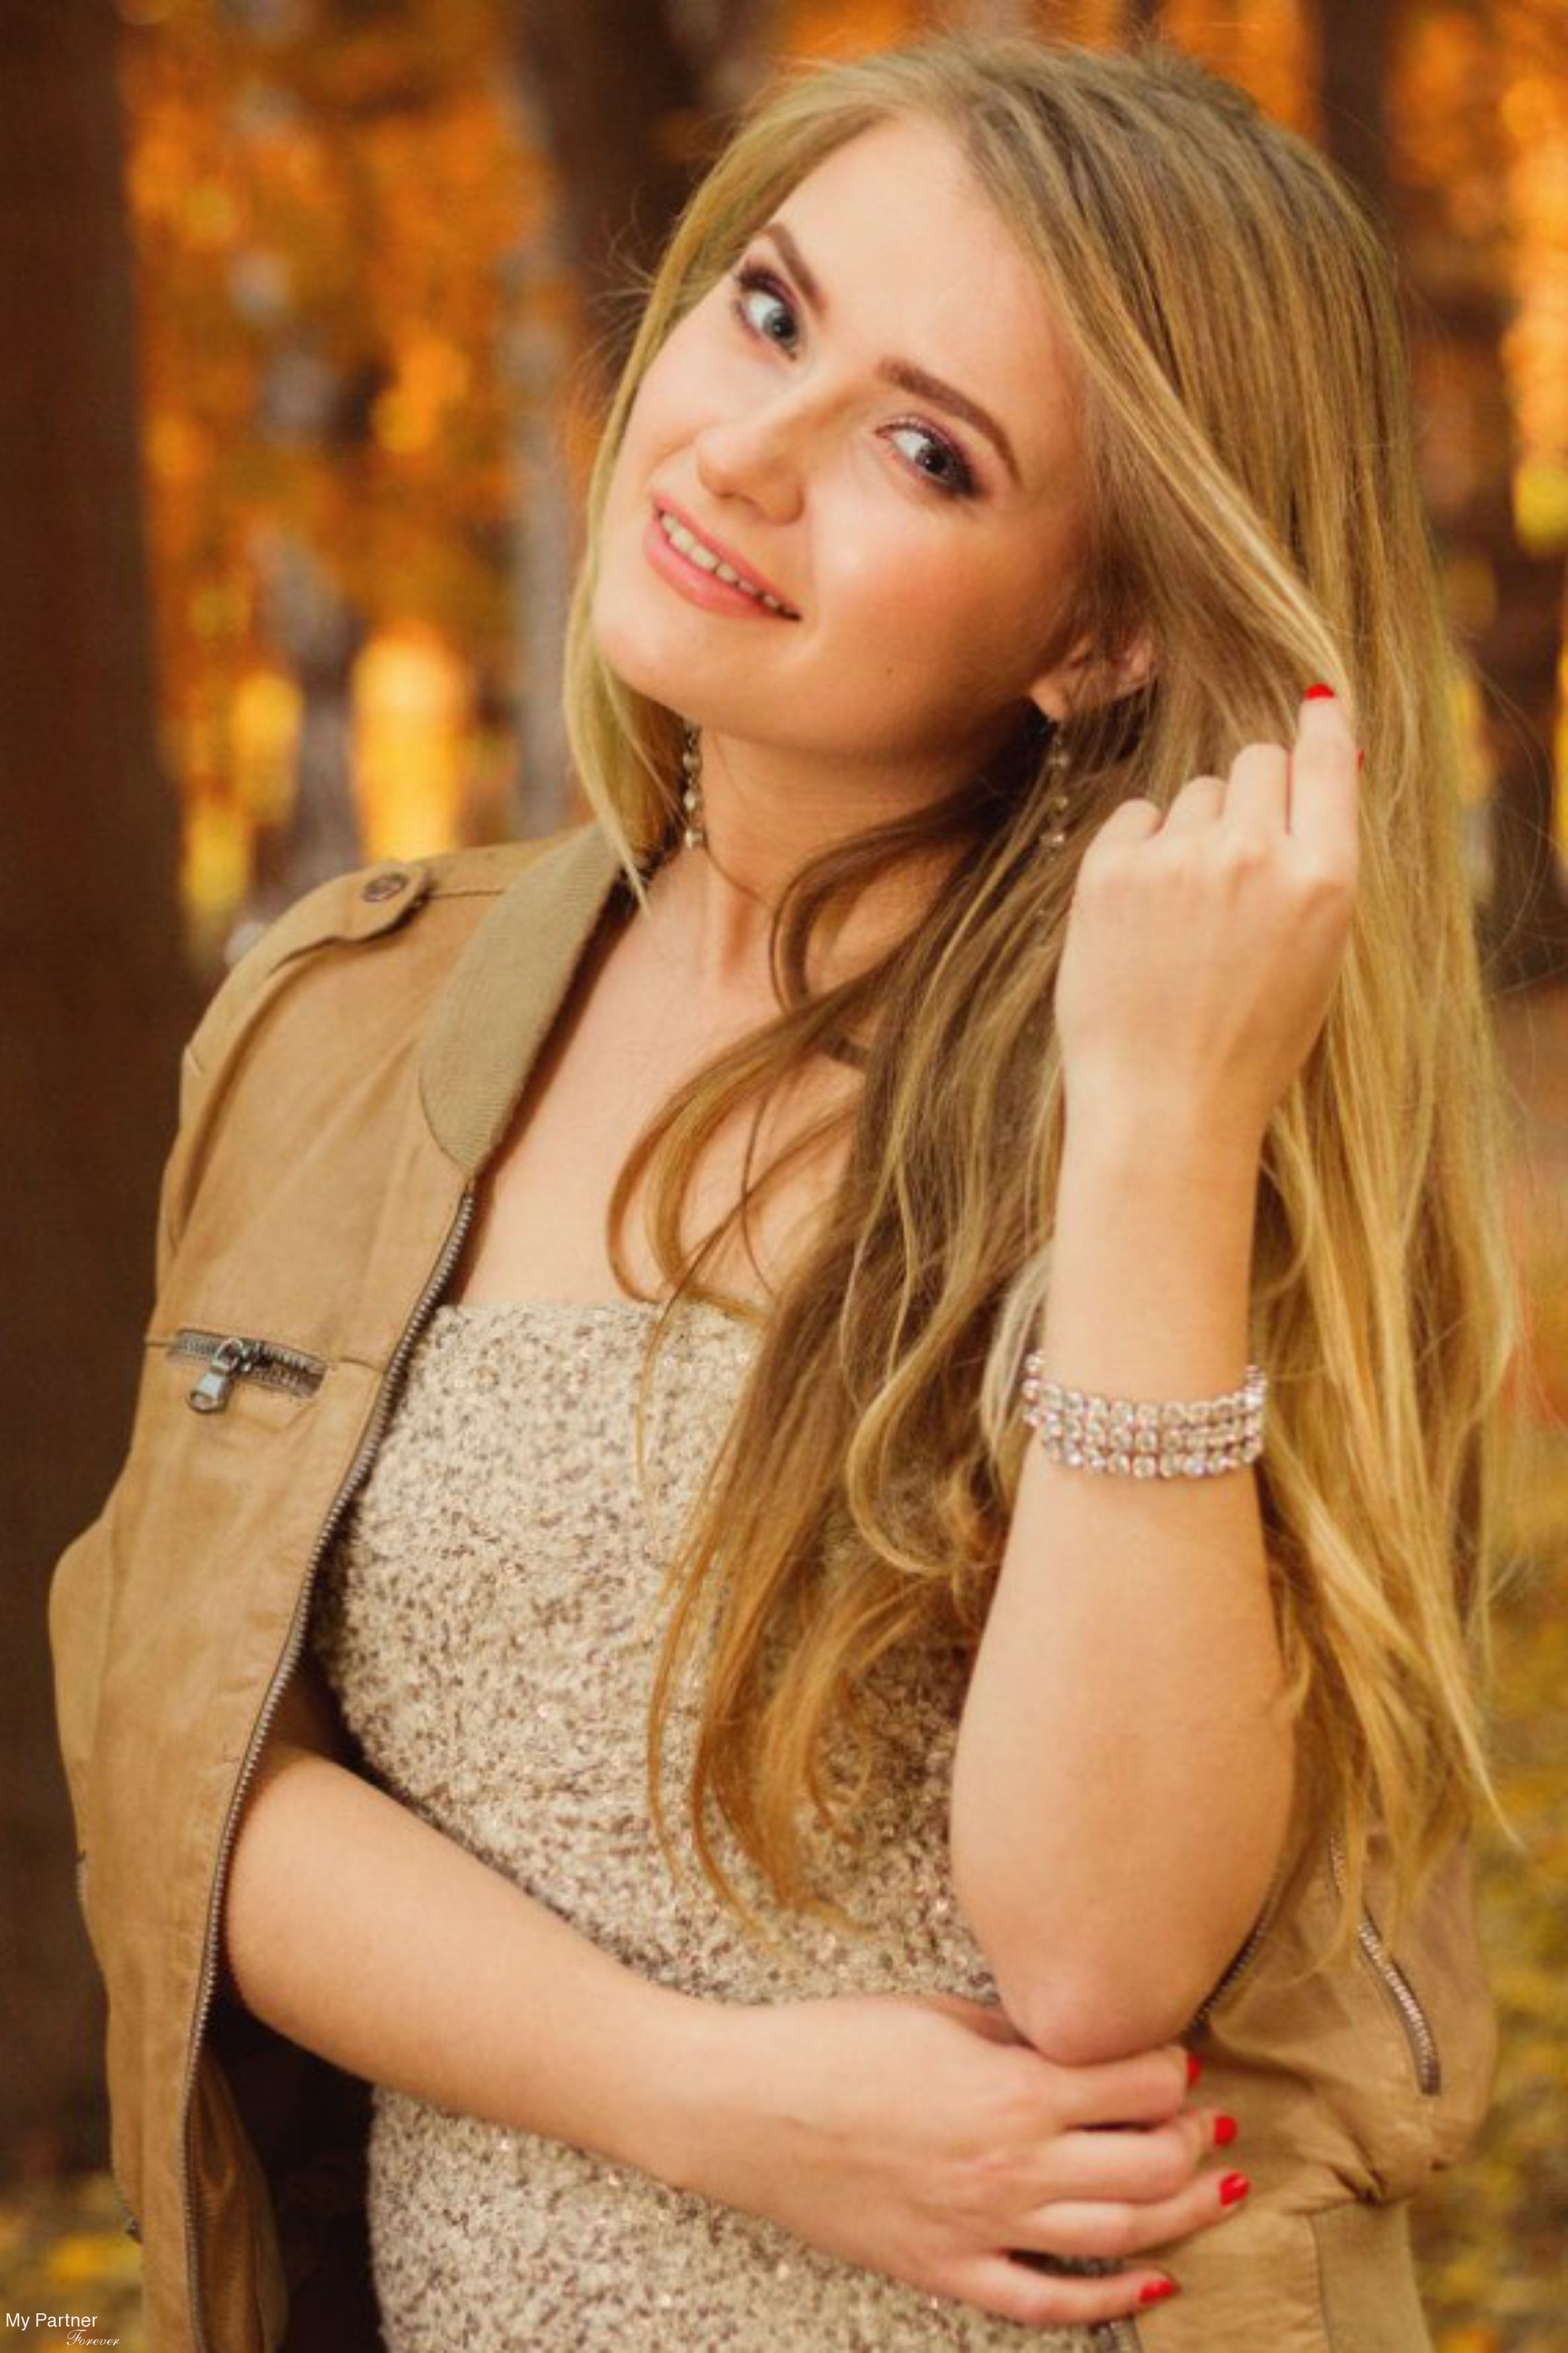 Charming Ukrainian Bride Tatiyana from Vinnitsa, Ukraine